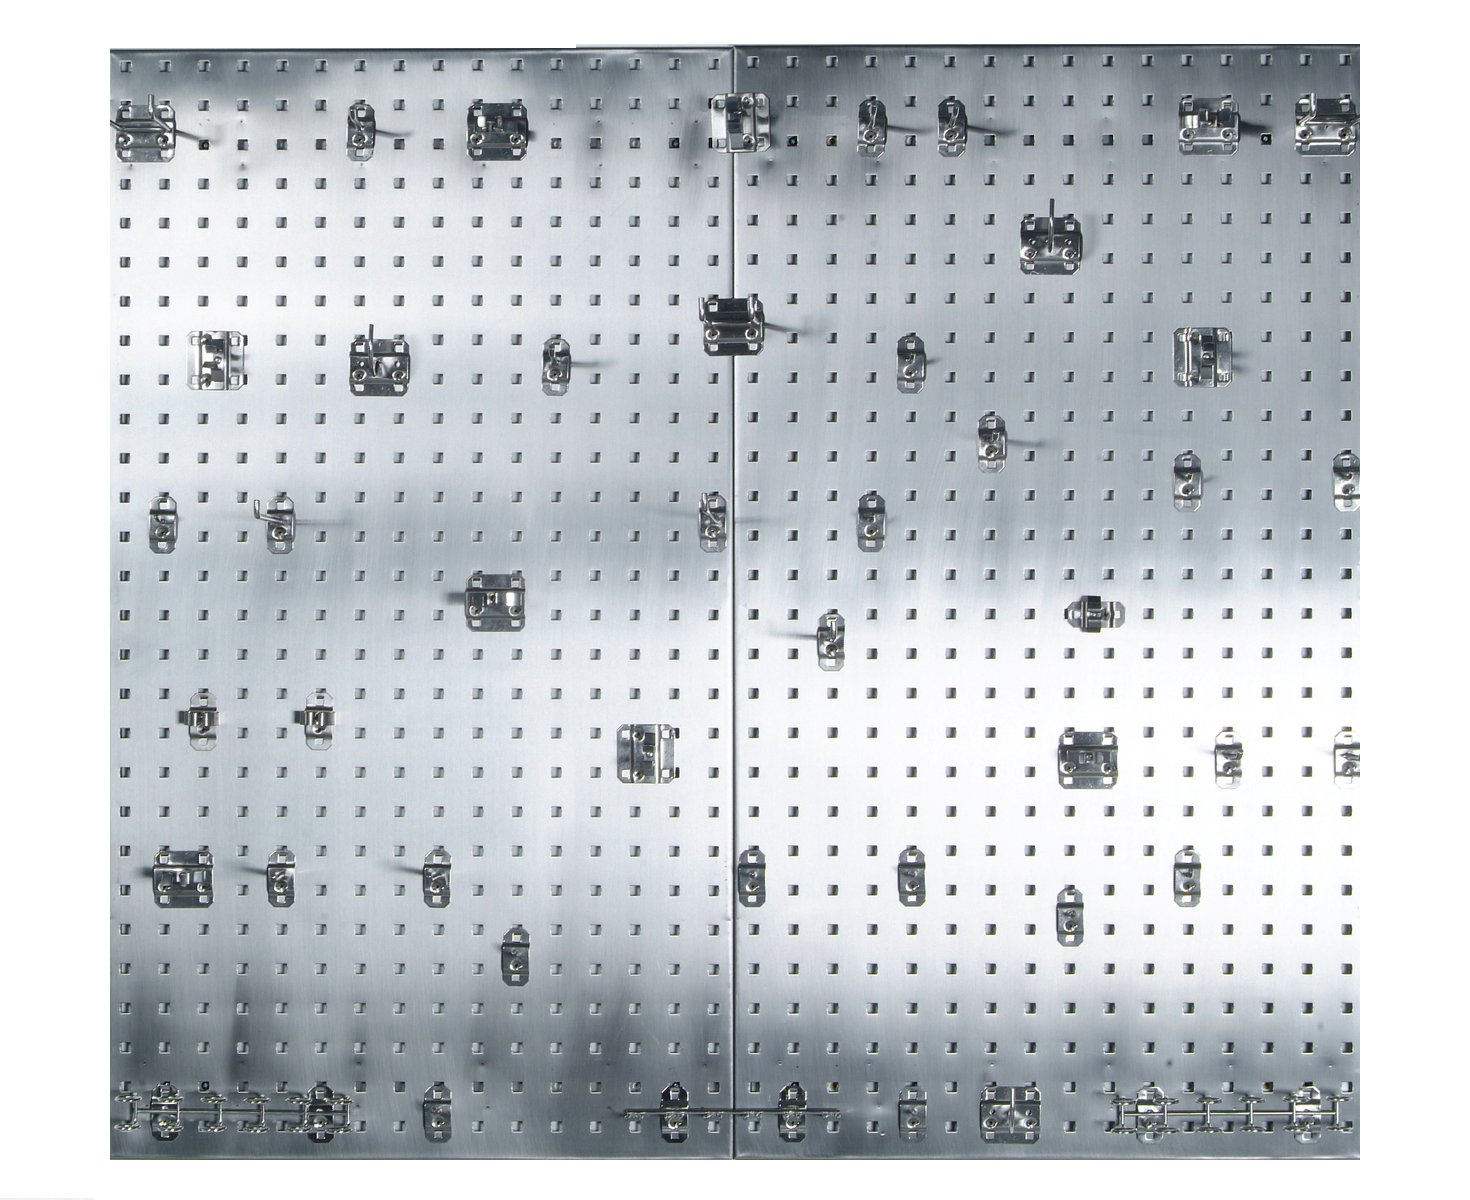 Triton Products Locking Pegboard Hooks LB2-SKit 304 Stainless Steel Square Hole Pegboards with 45 Piece Stainless LocHook Assortment with Mounting Hardware, 24'' x 42.5'' x 9/16'', Silver by Locking Pegboard Hooks (Image #1)